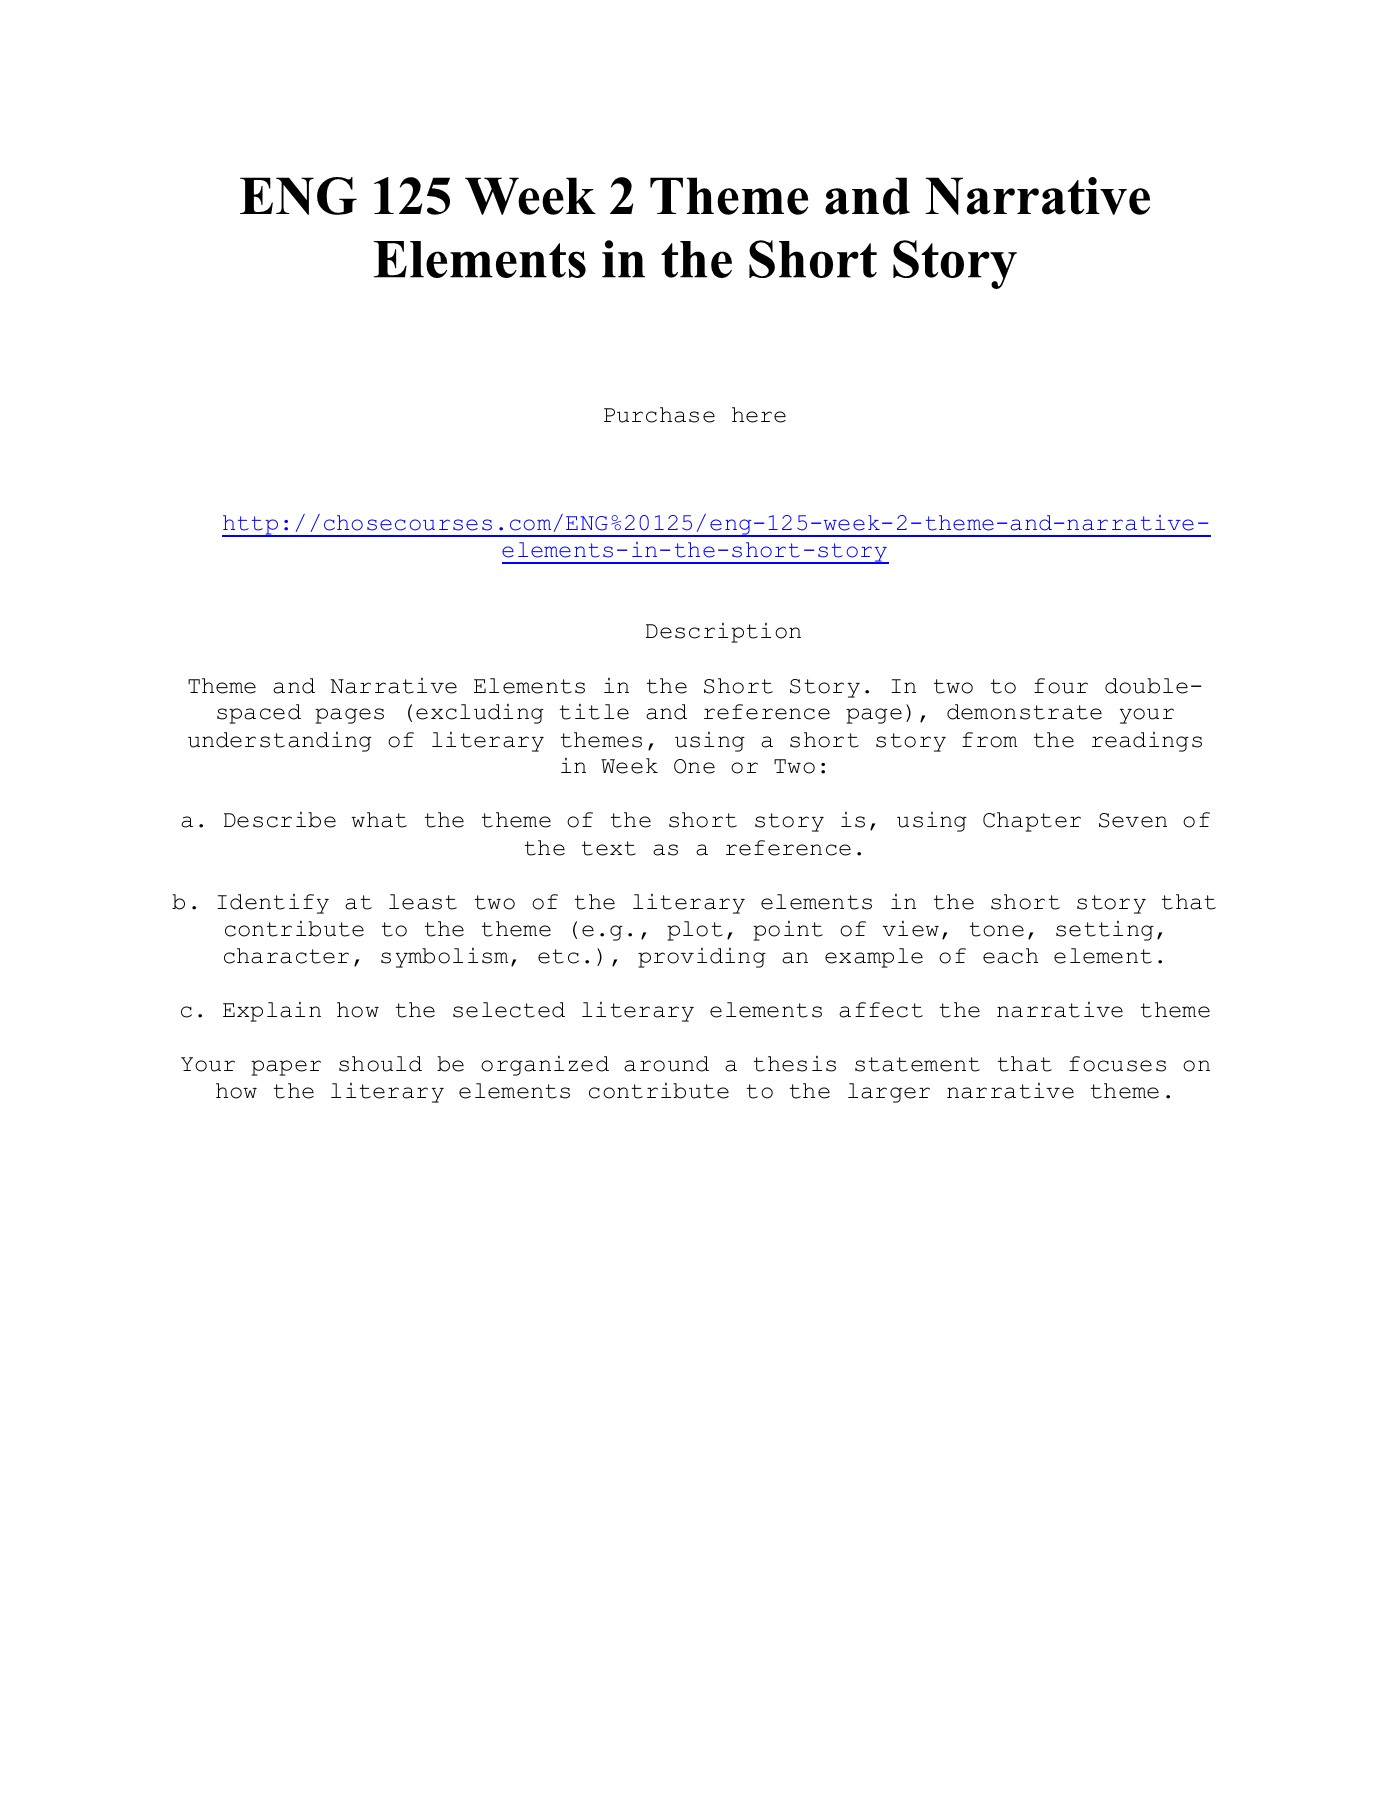 How to reference a short story in an essay